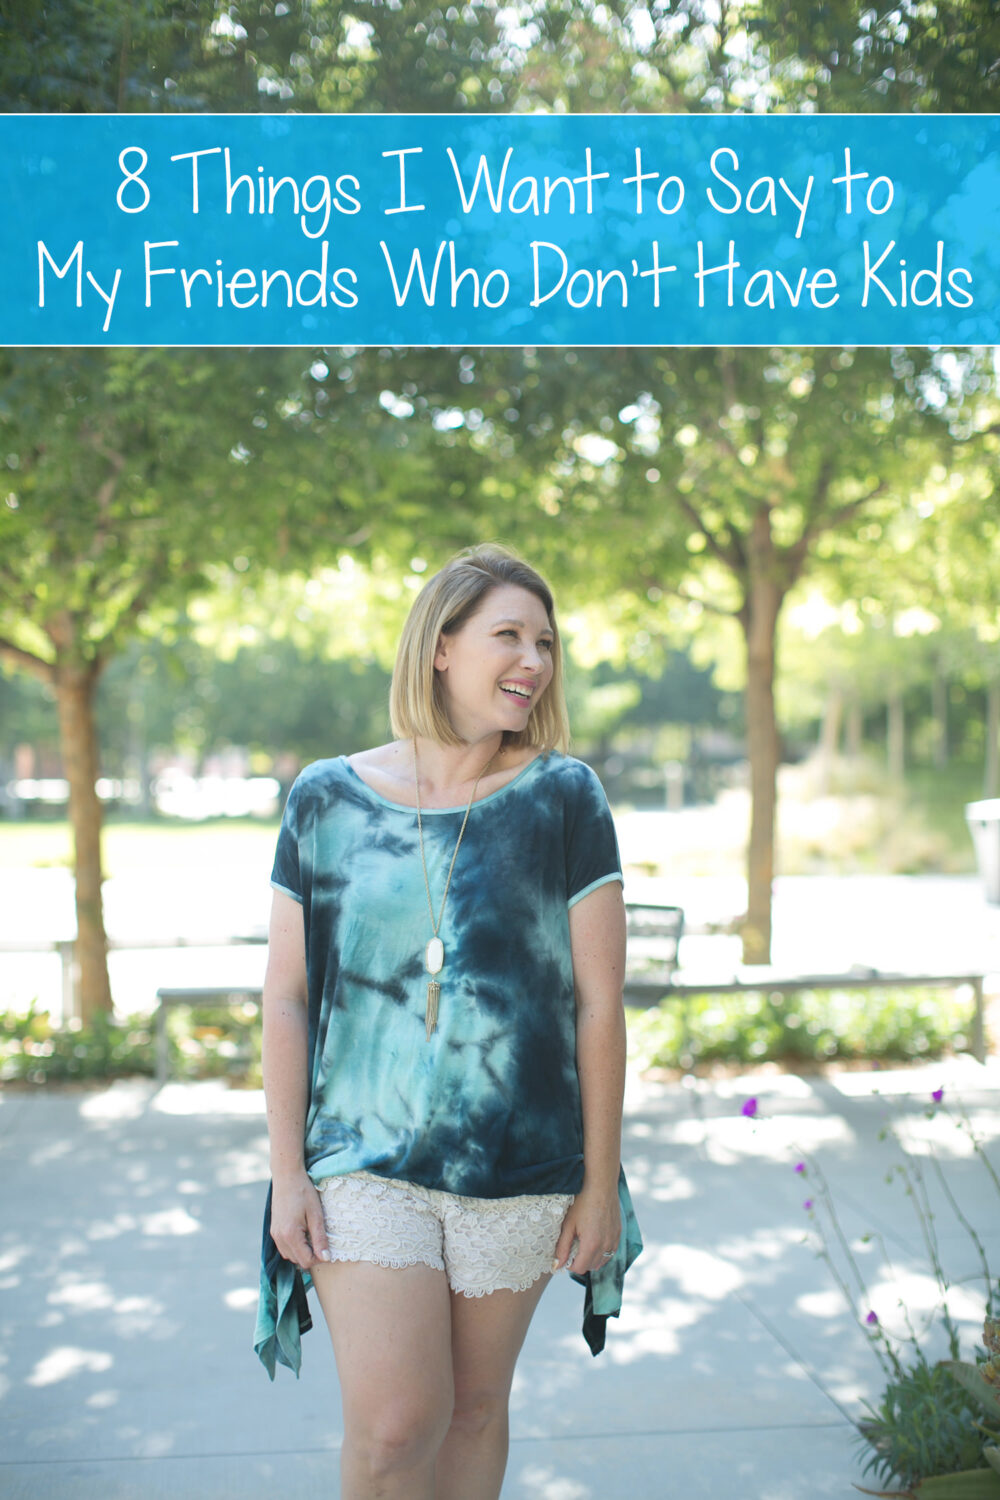 All moms have them. Your friends that don't have kids yet. And we all have a few things we'd like to share with them, right? 8 things I want to say to my friends who don't have kids.